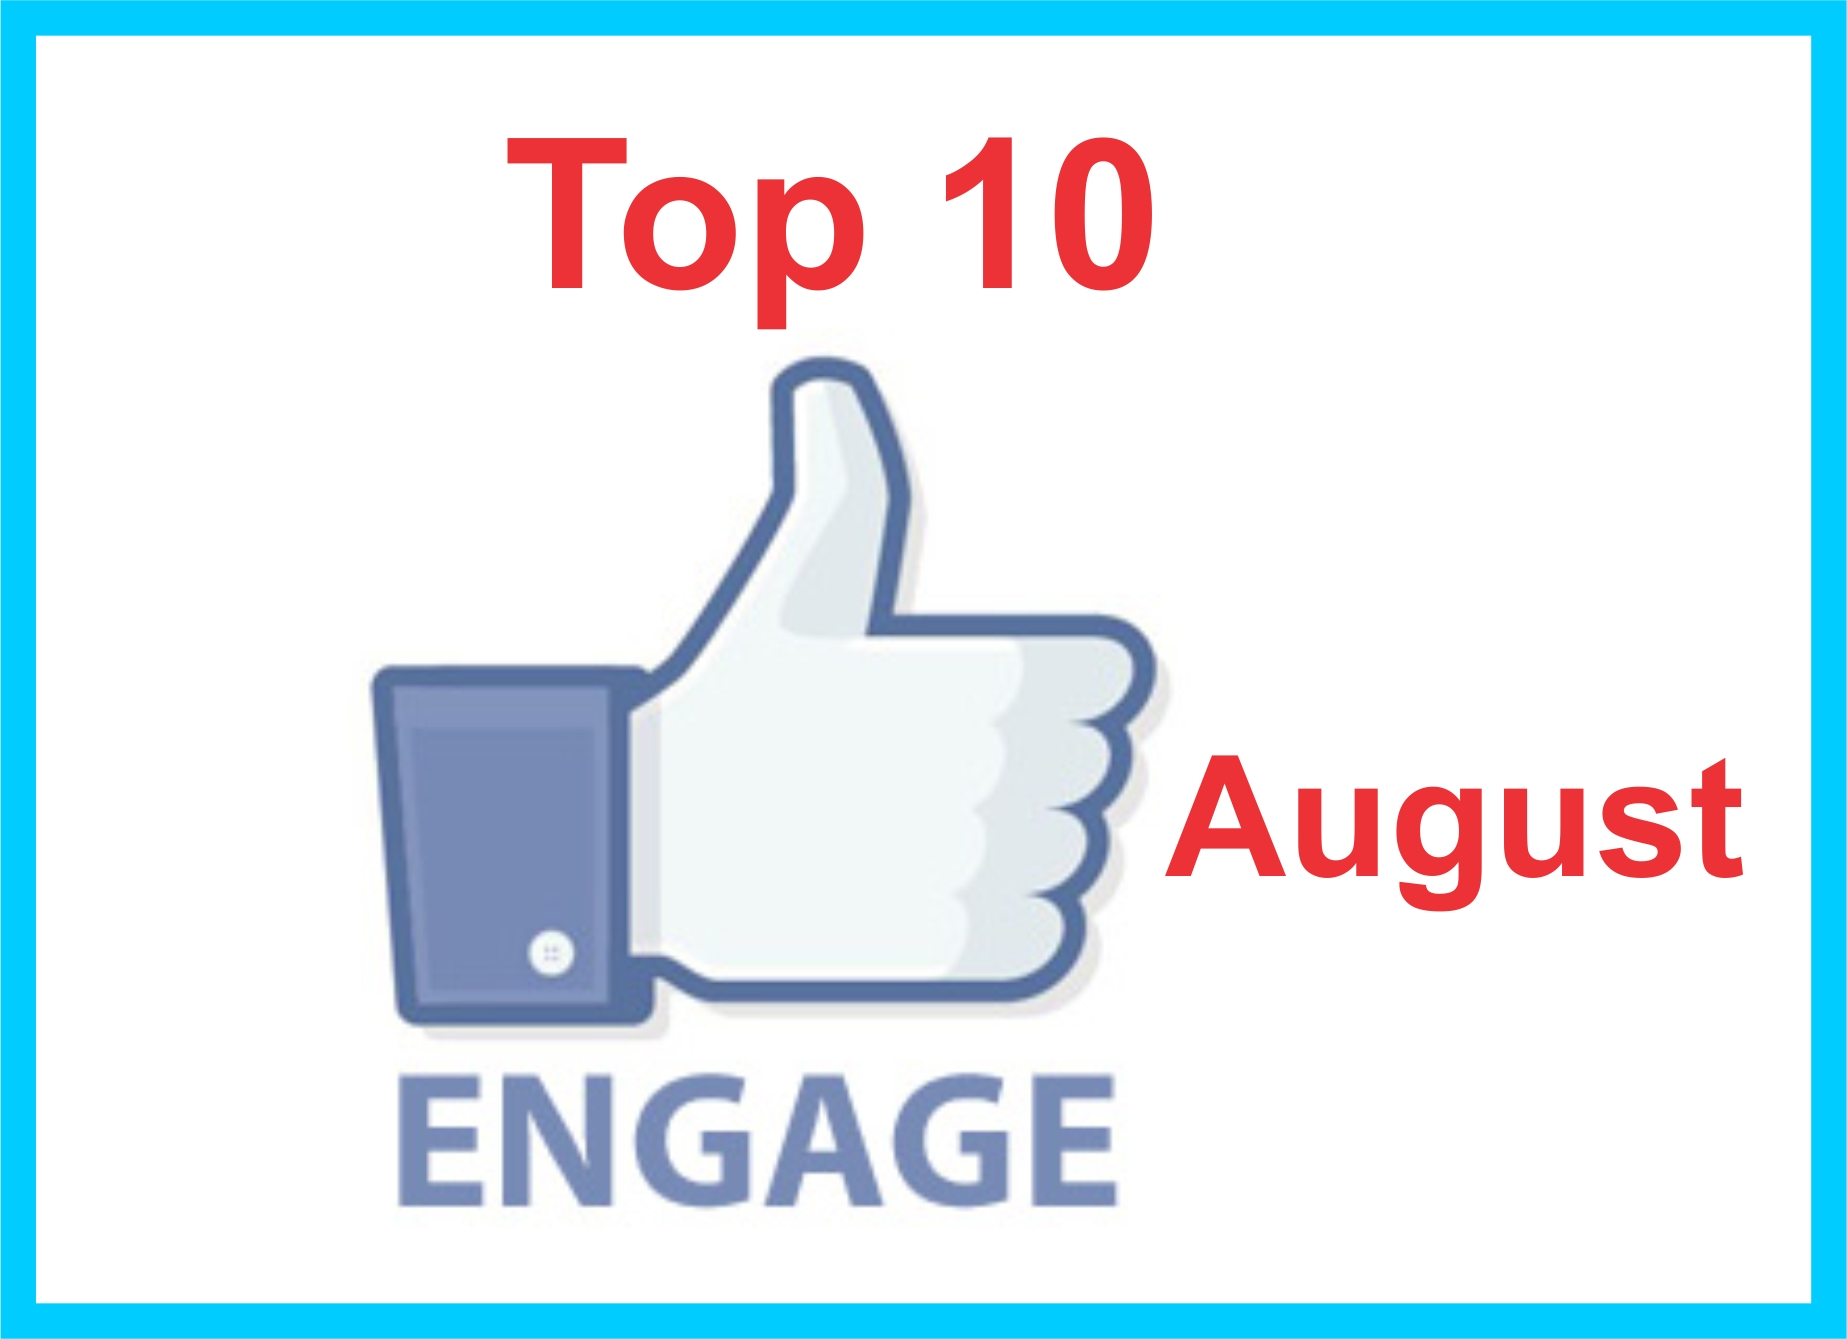 Top 10 august FB